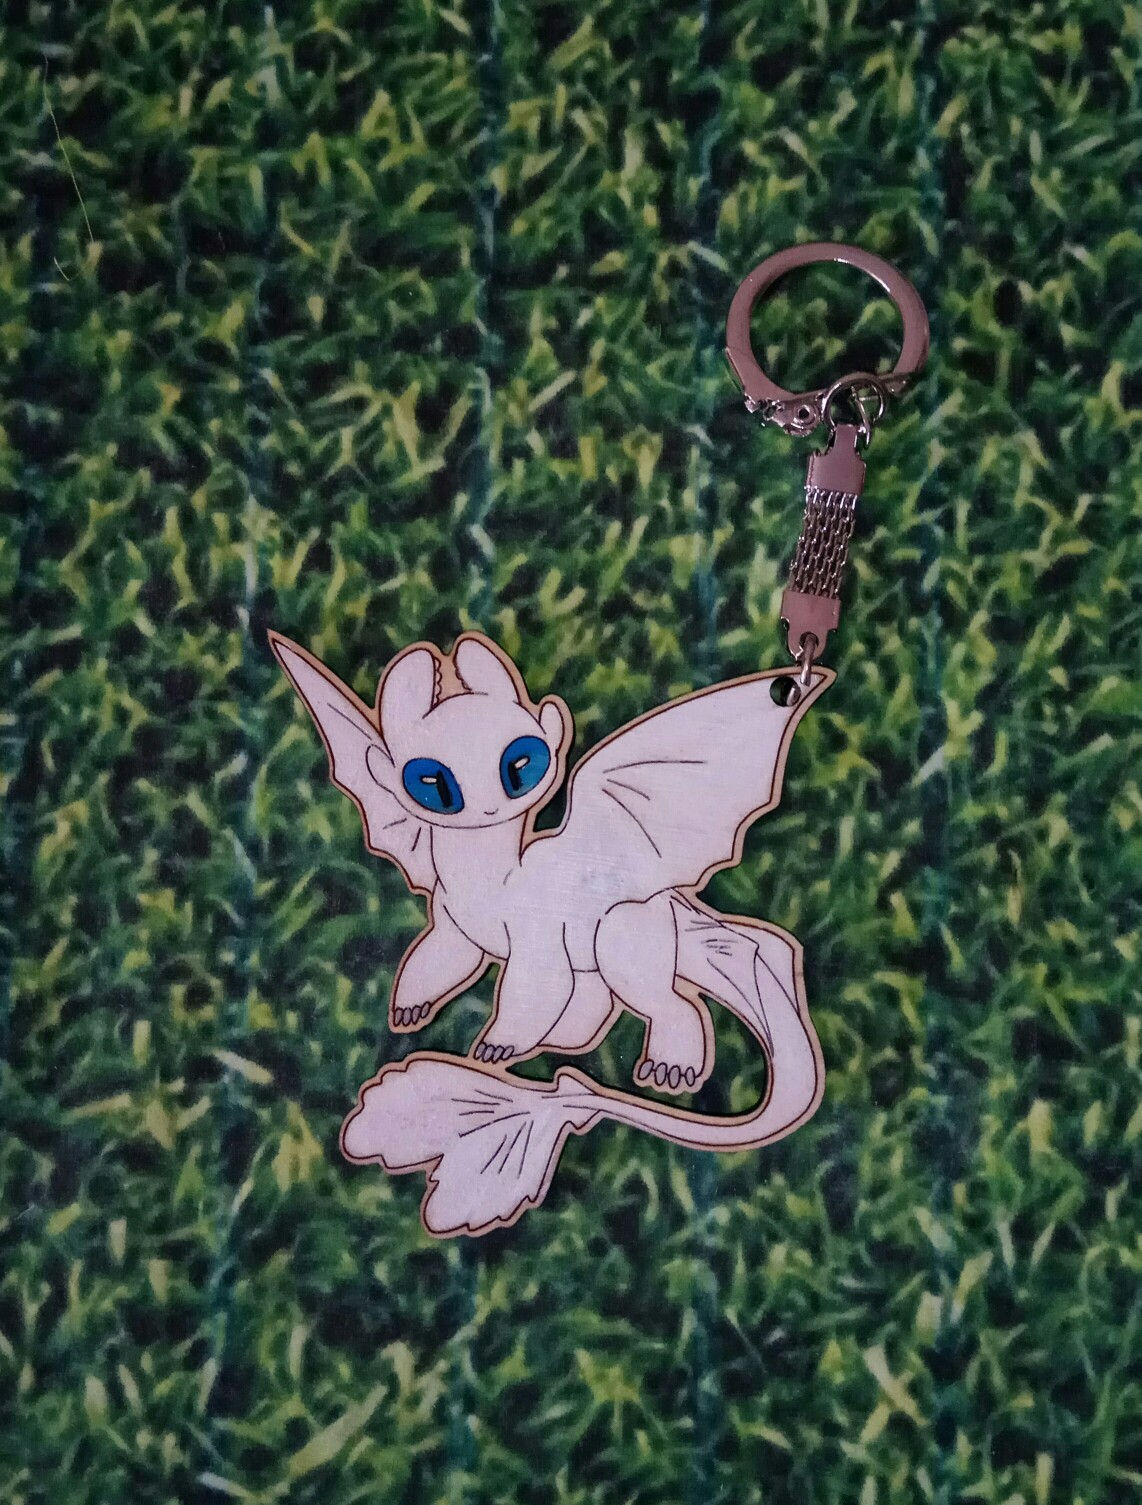 Laser Cut Toothless Nightfury White Fury Keychain Free Vector